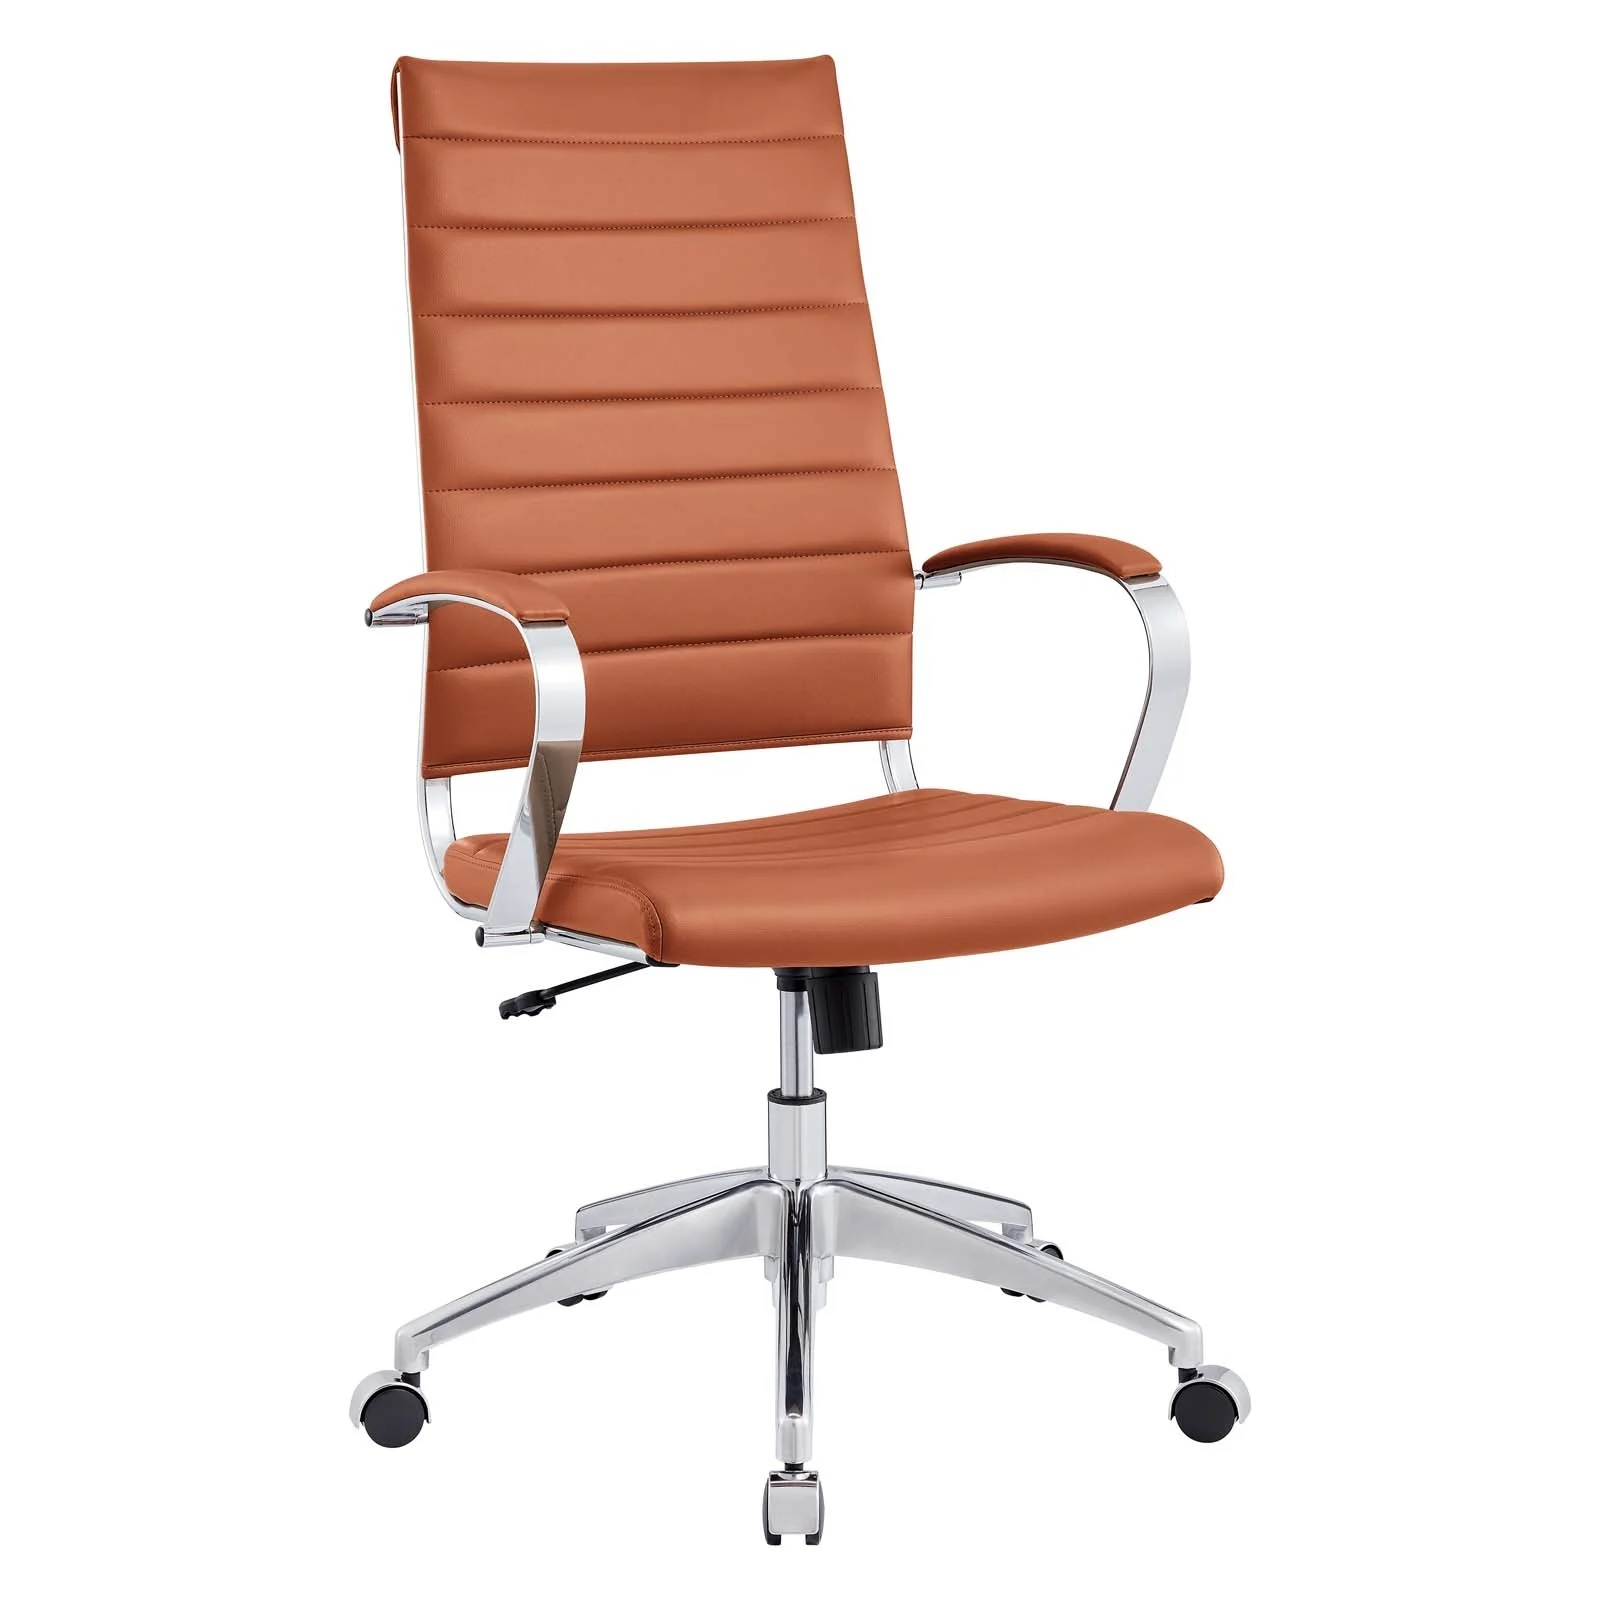 Highback Office Chair in Terracotta